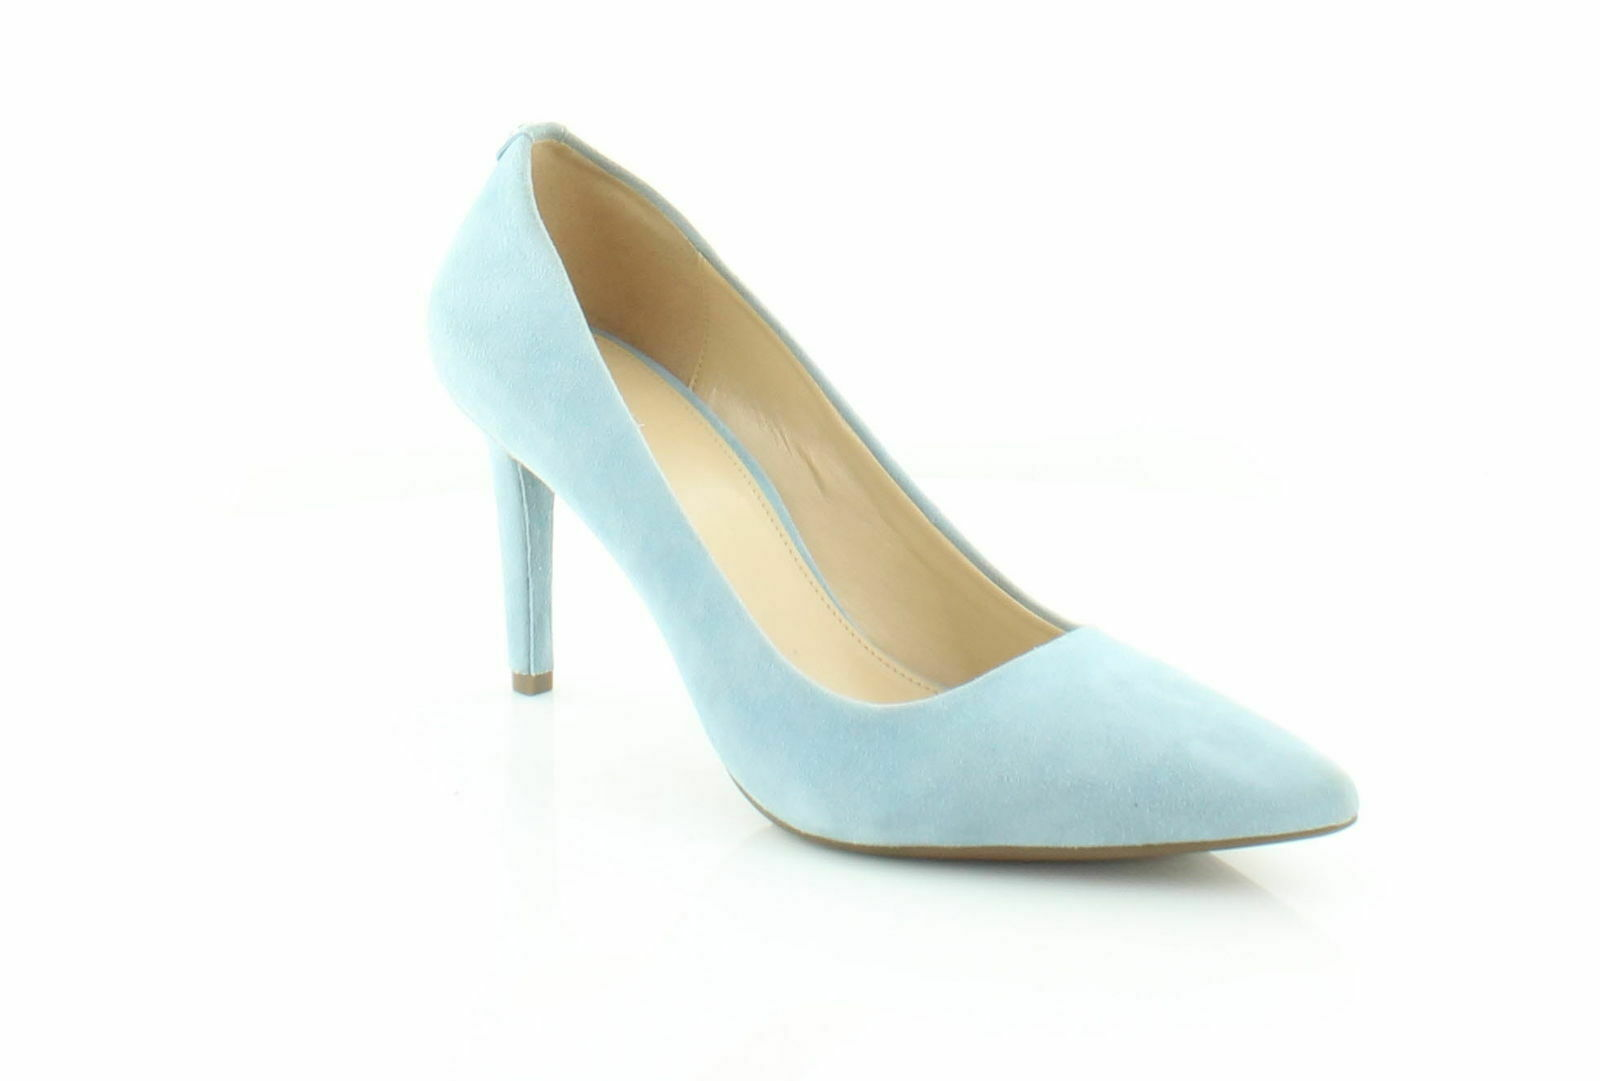 Primary image for Michael Kors Dorothy Flex Pump Blue Women's Shoes Size 10 M Heels MSRP $99